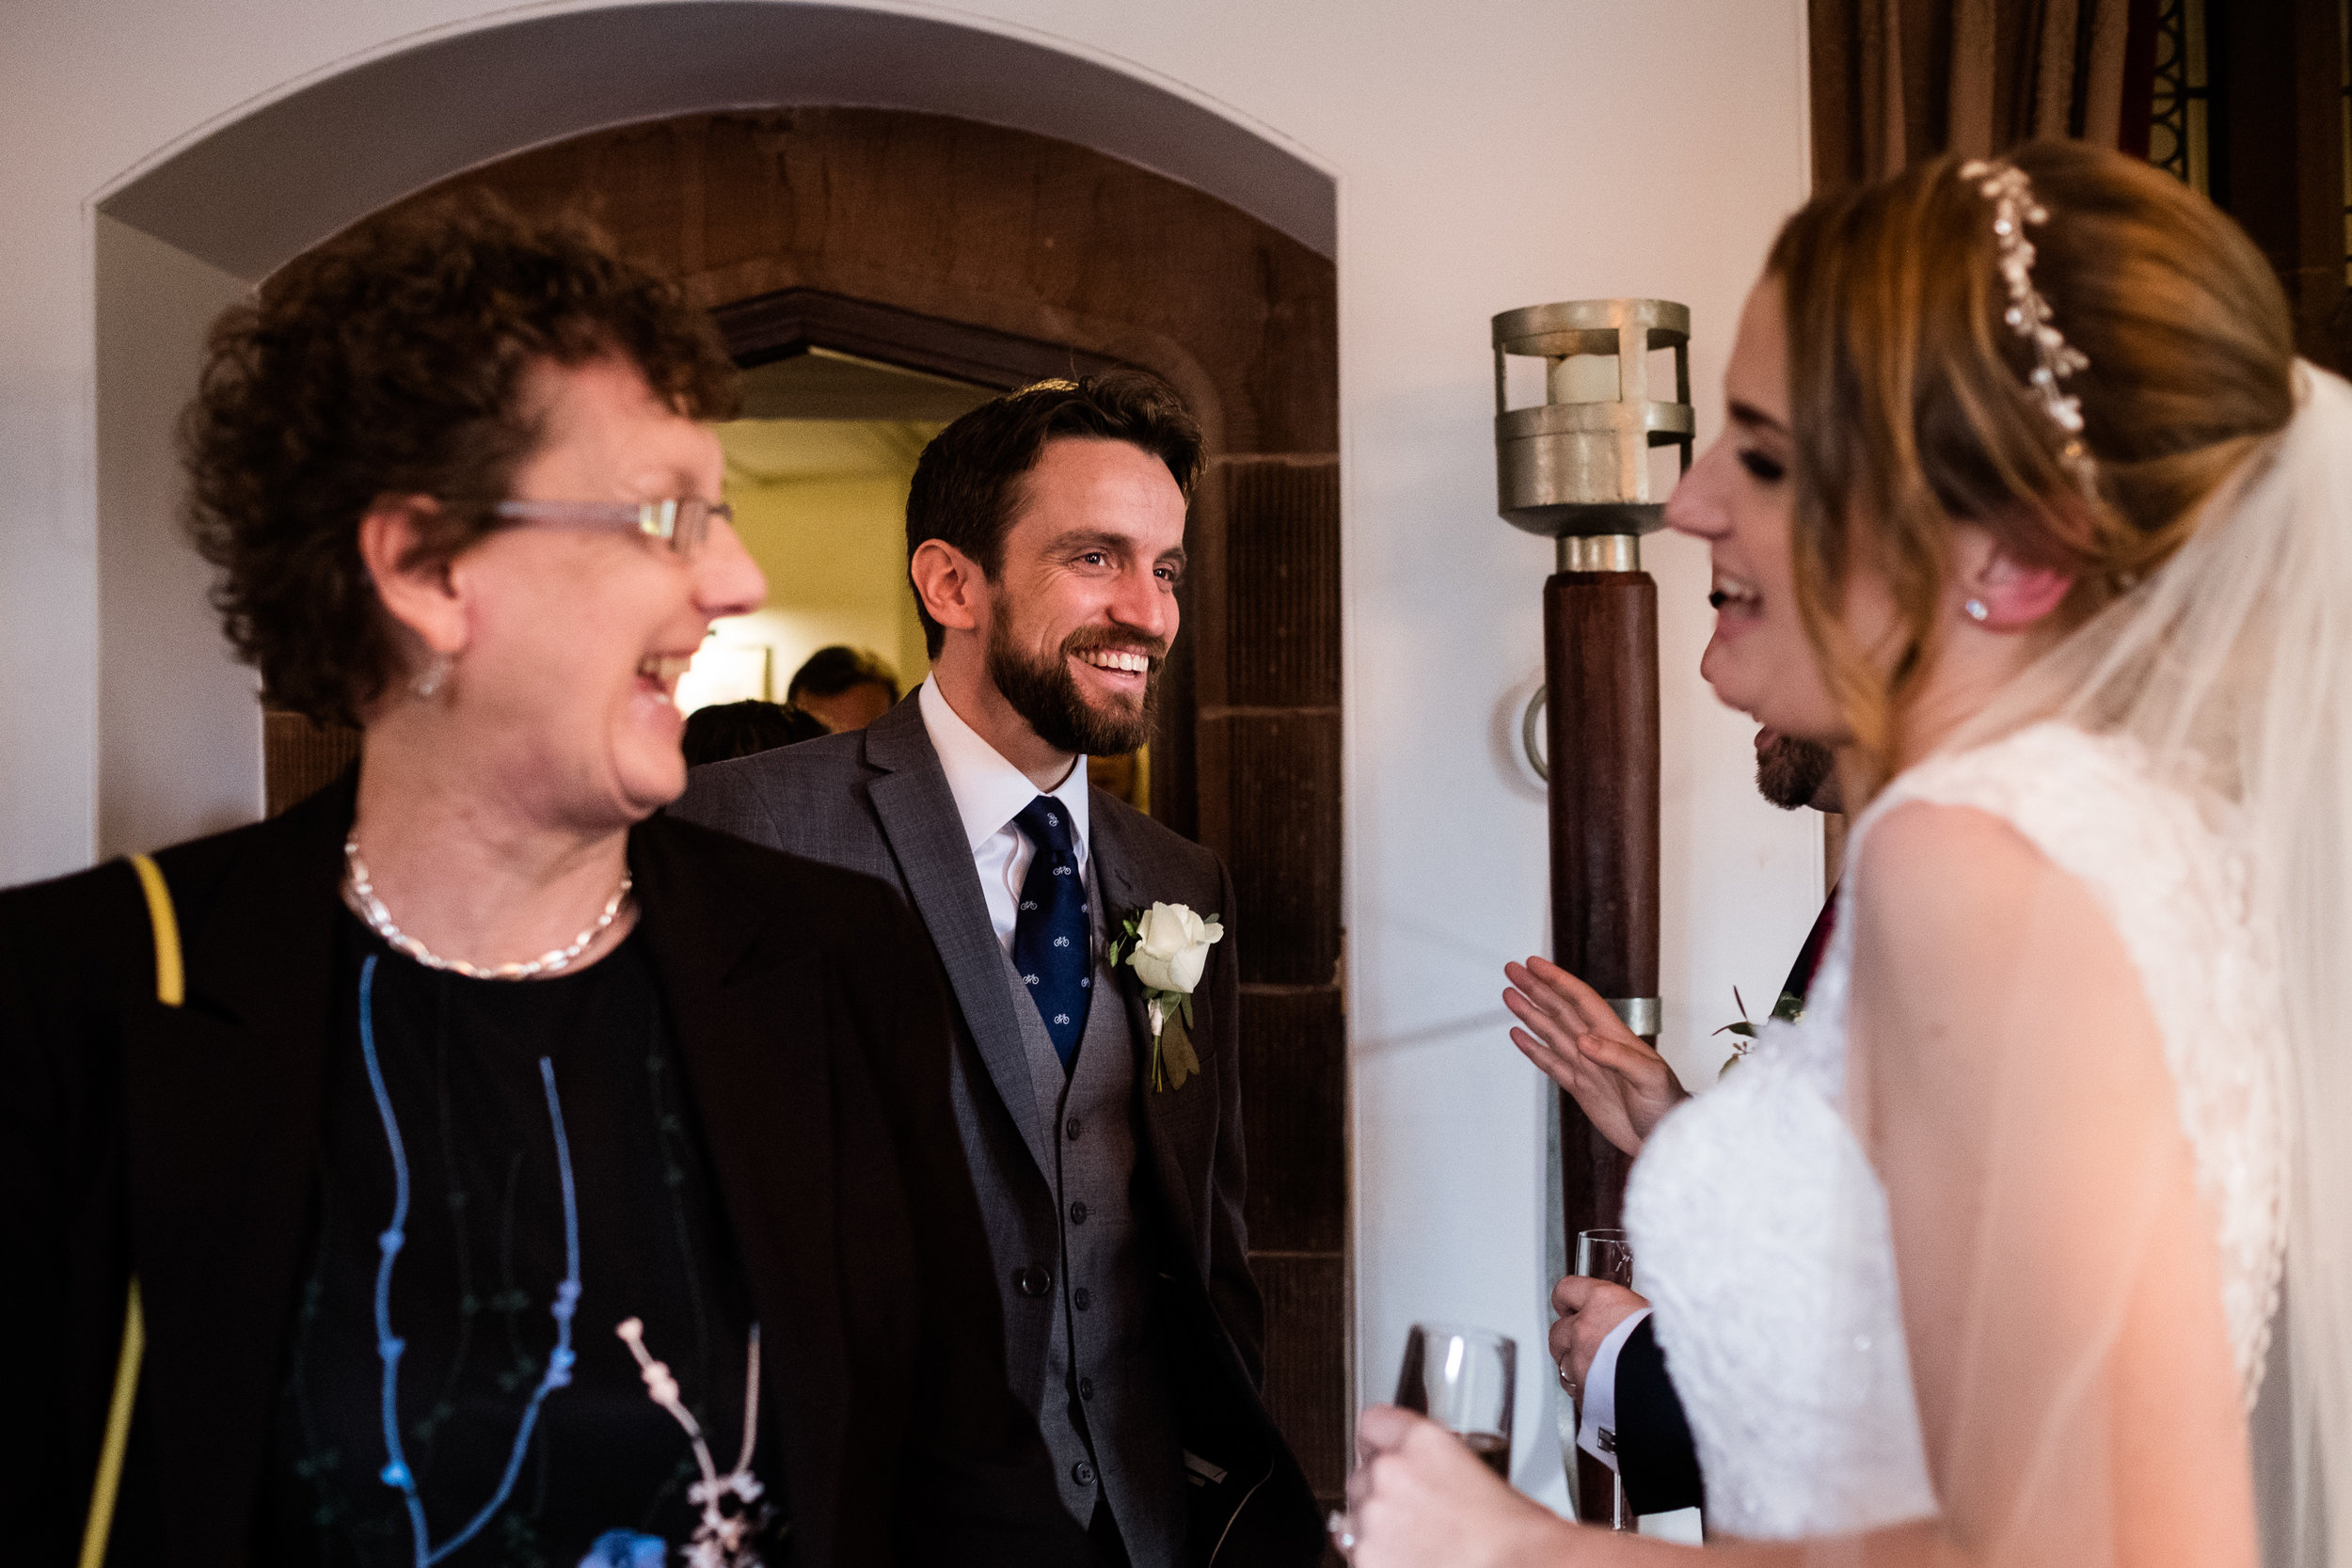 Birmingham Documentary Wedding Photography at New Hall, Sutton Coldfield Turkish Red Candid Reportage - Jenny Harper-42.jpg